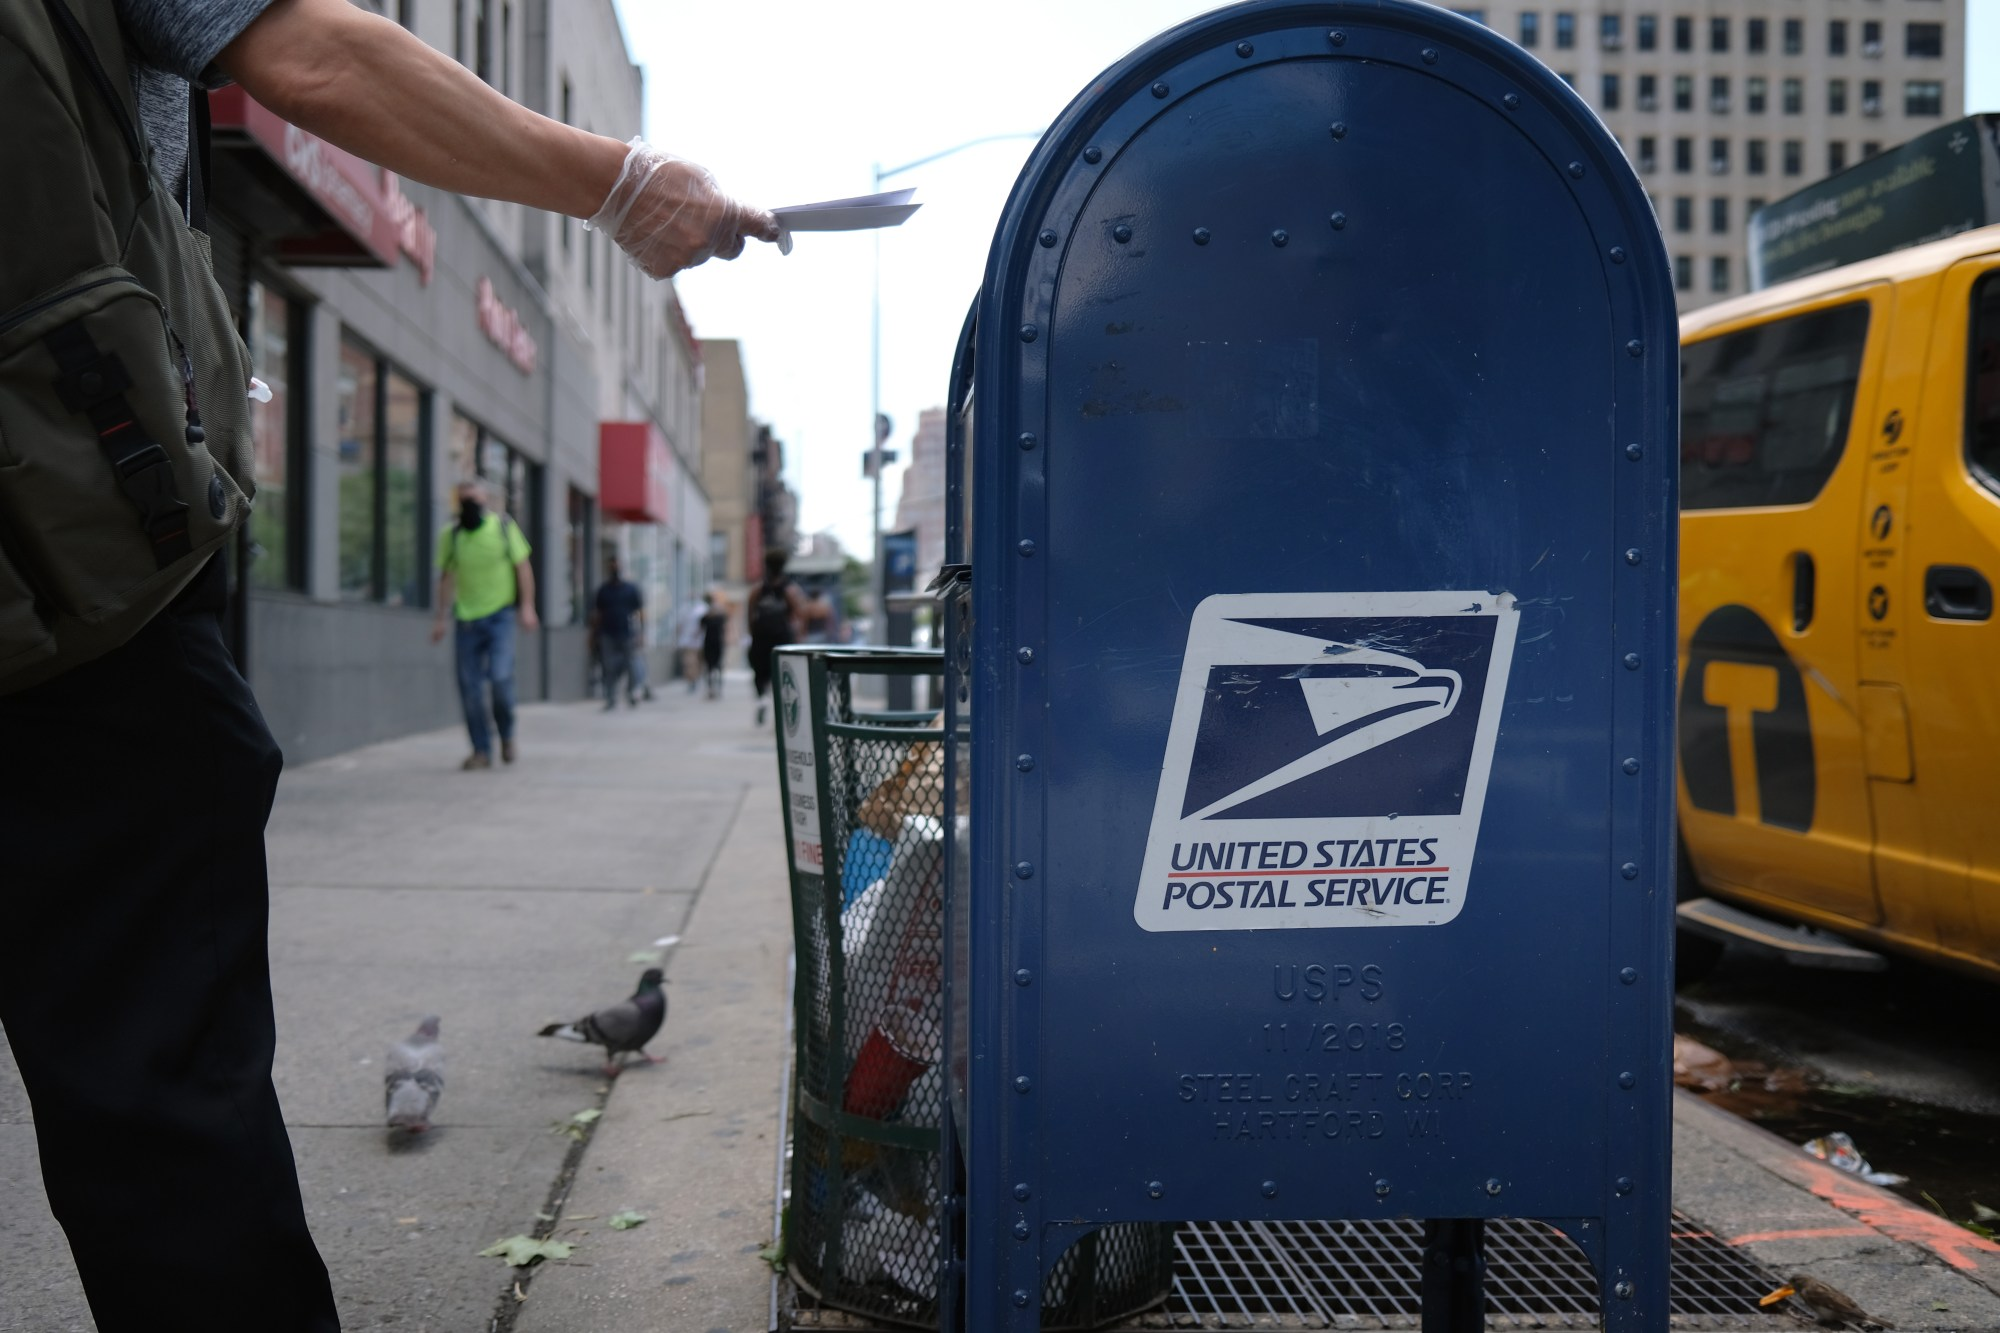 A U.S. Postal Service (USPS) mail box stands in Manhattan on August 5, 2020 in New York City. (Spencer Platt/Getty Images)